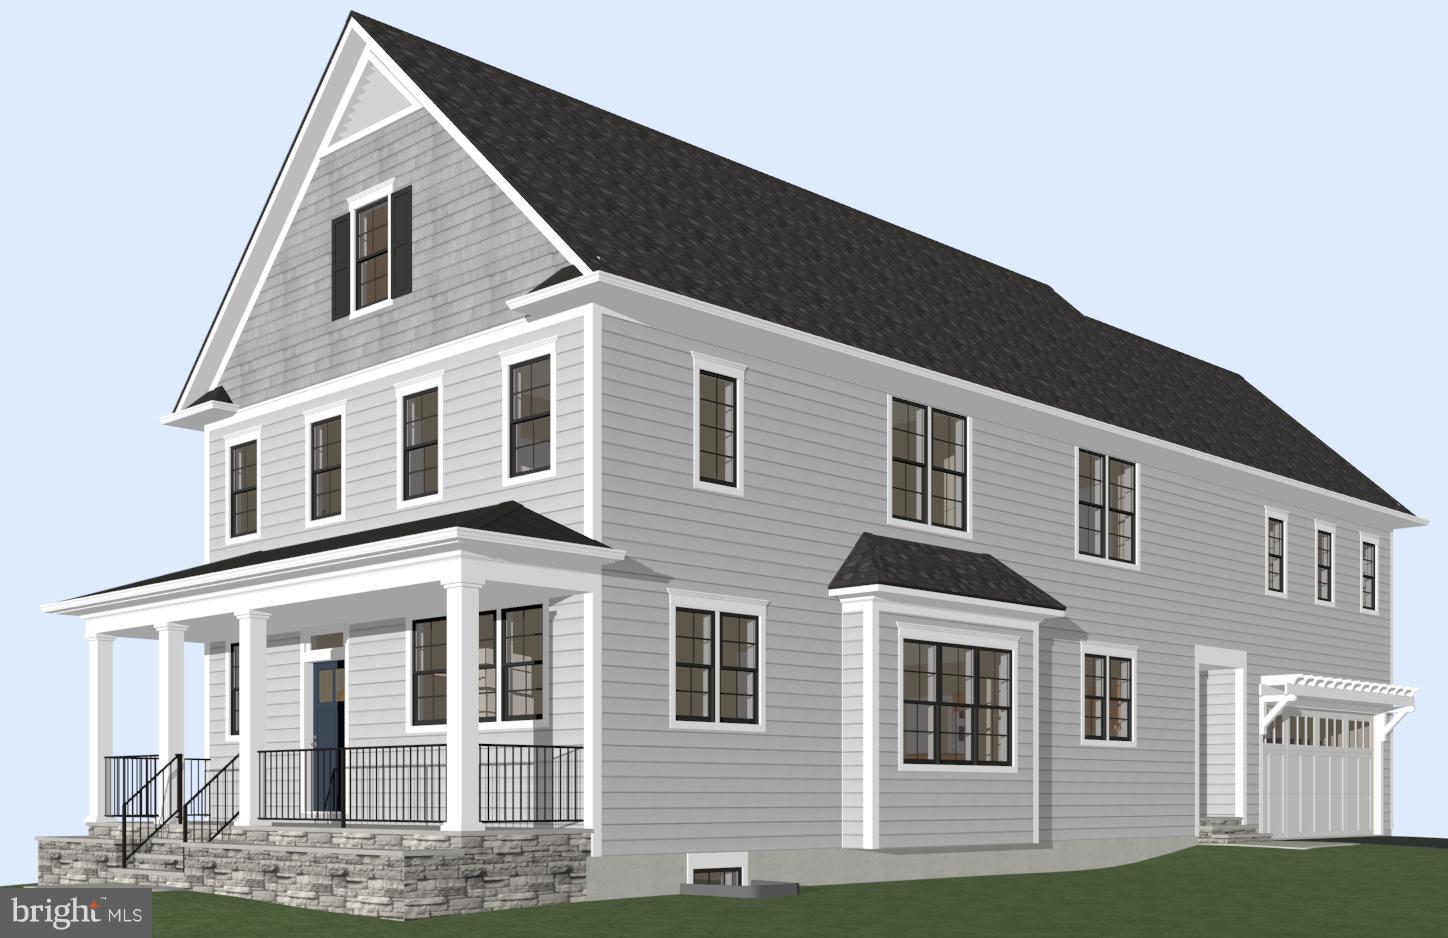 New Construction by Snead Homes! 5 beds, 4.5 baths with high end features throughout. Energy efficient touches include upgraded insulation, 2-zone HVAC, double hung windows, fiberglass insulated doors, Nest thermostat. Gourmet kitchen with Thermador appliances and open concept. Attached 2 car garage, front porch. Walk to Westover! Get in early to pick your finishes.